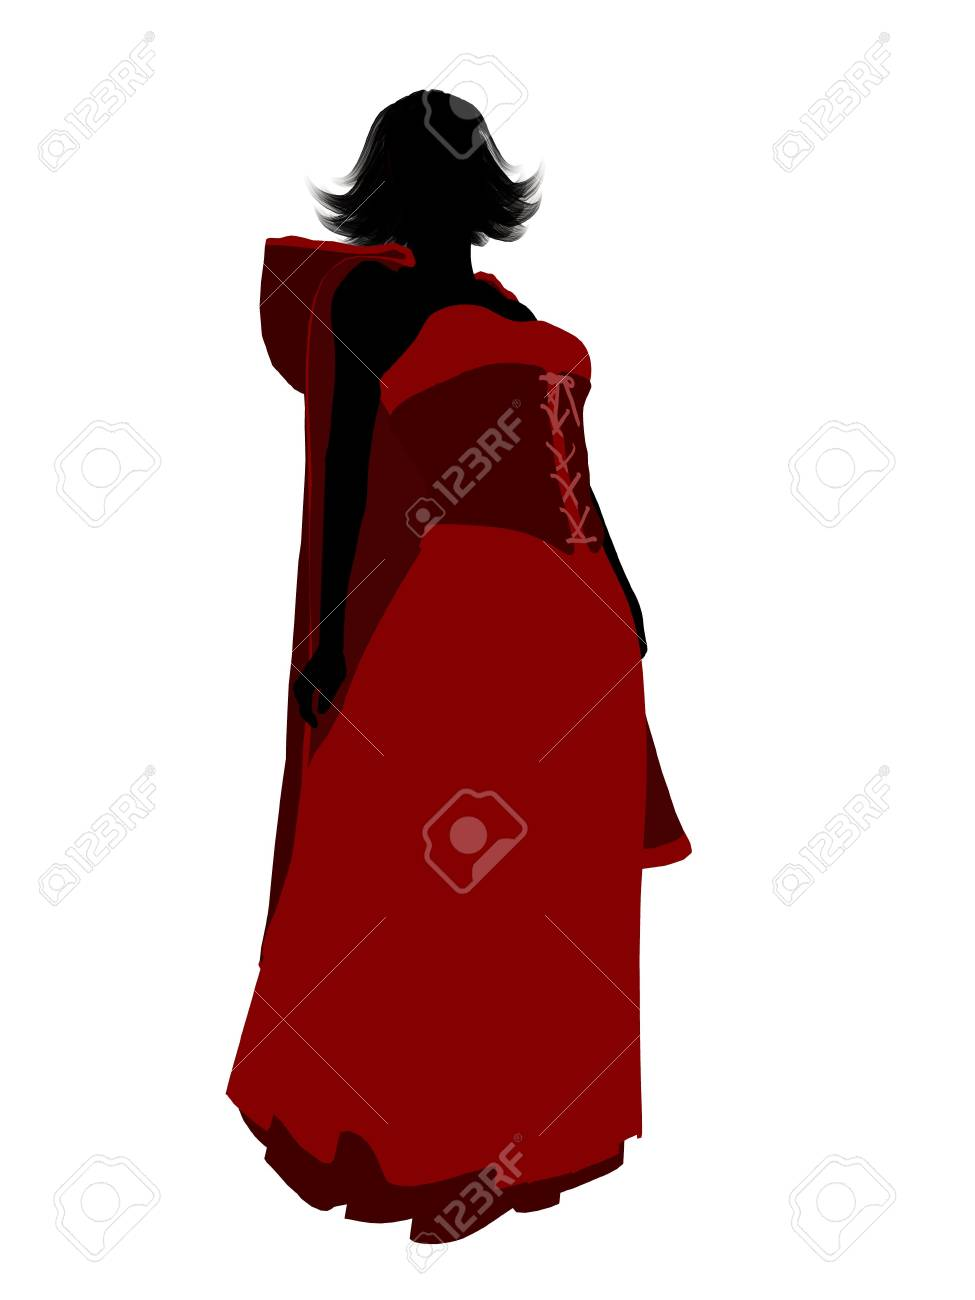 Little Red Riding Hood illustration silhouette on a white background Stock Illustration - 6586260